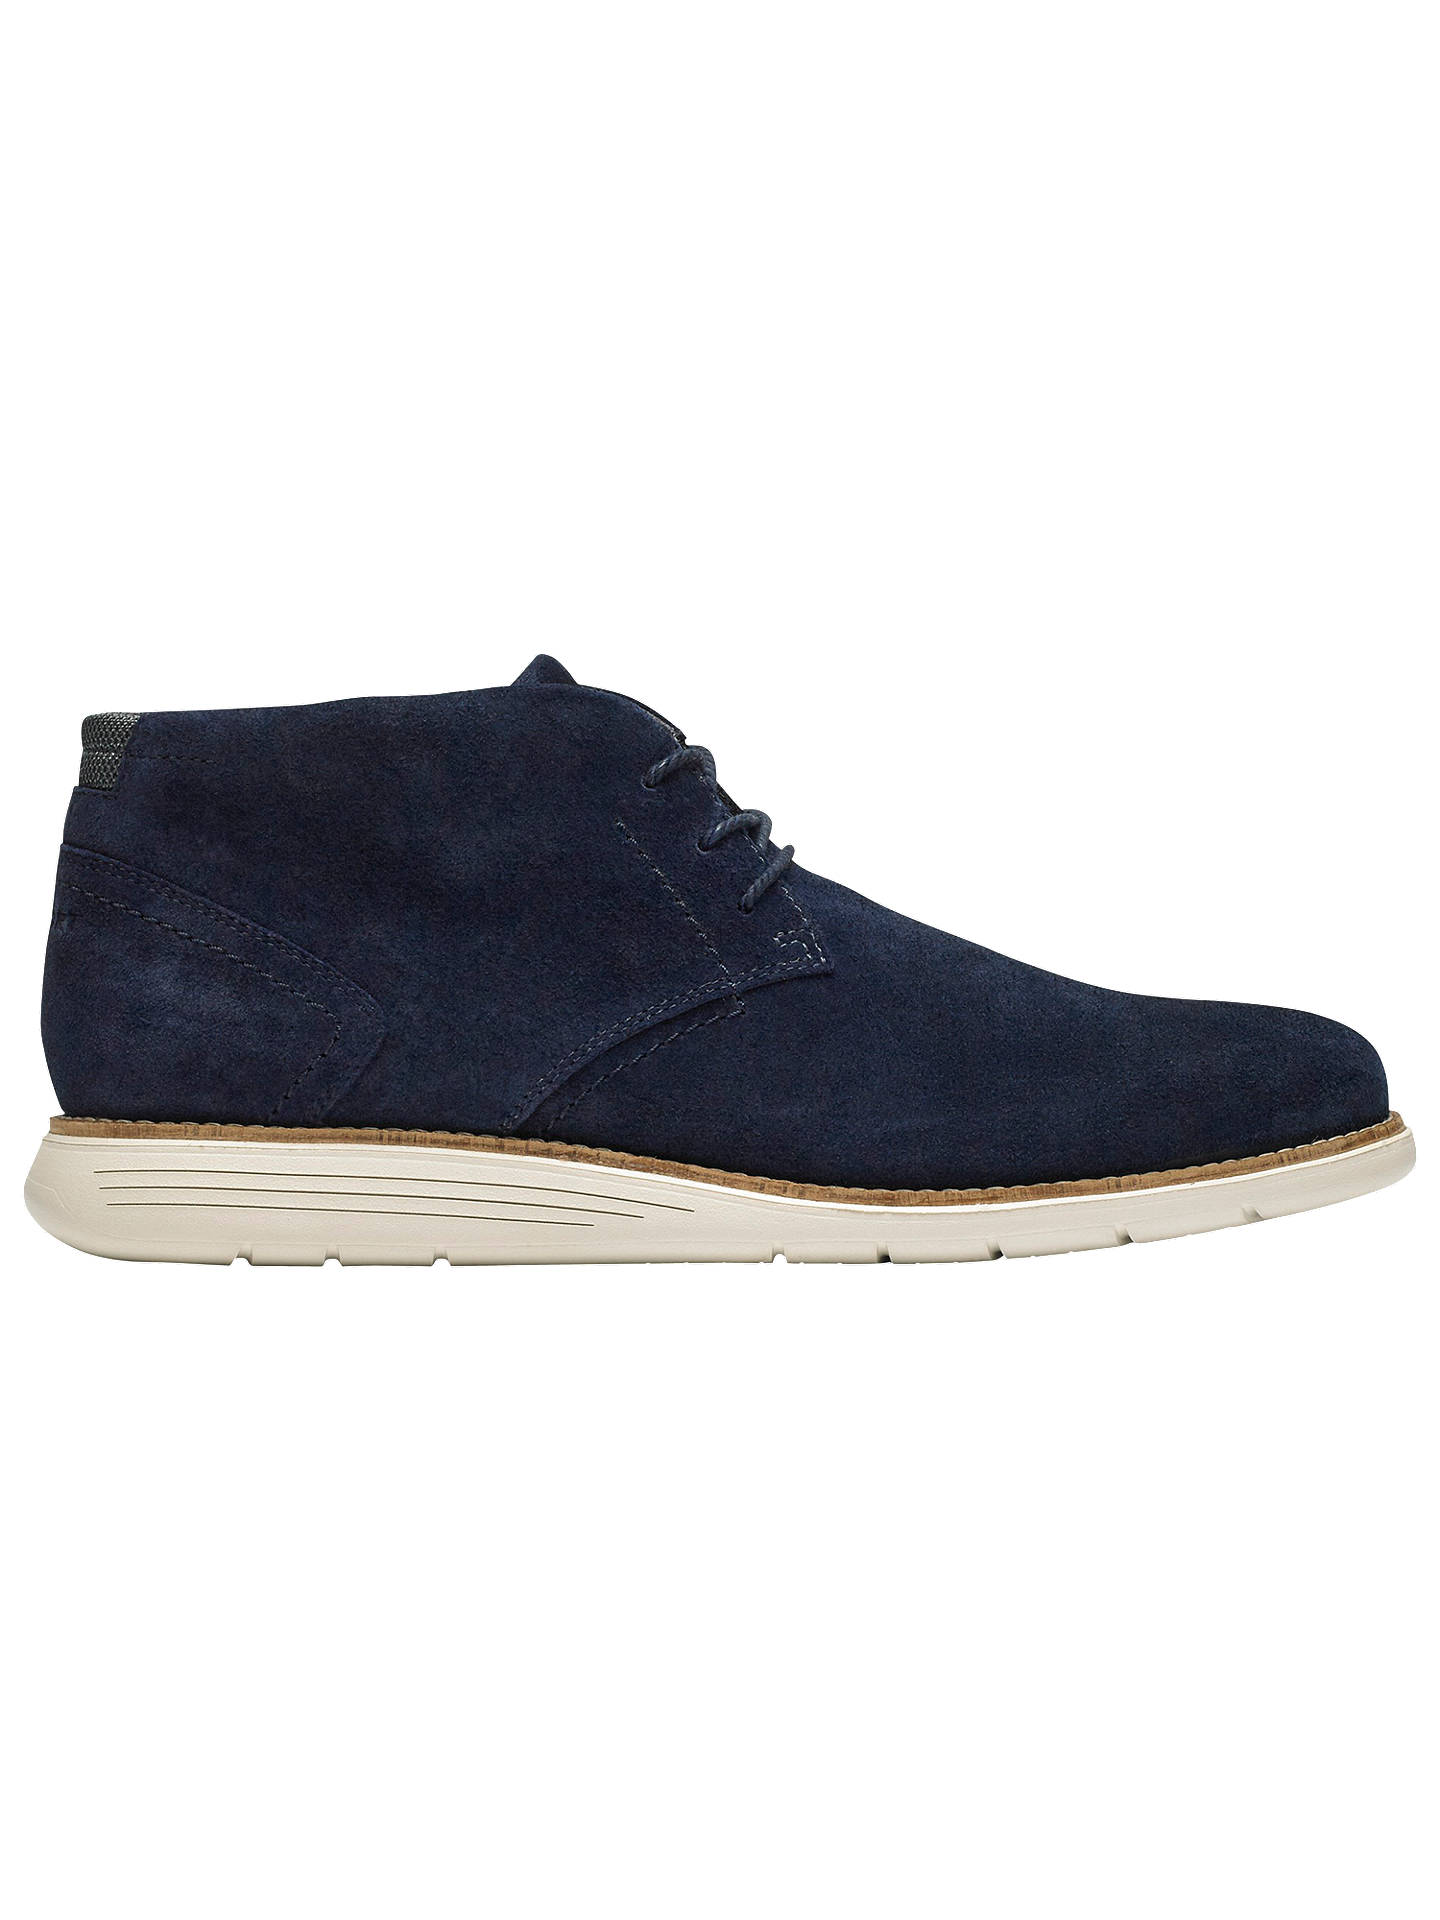 BuyRockport Total Motion C.F. Stead Suede Sports Chukka Boots, Navy, 8 Online at johnlewis.com